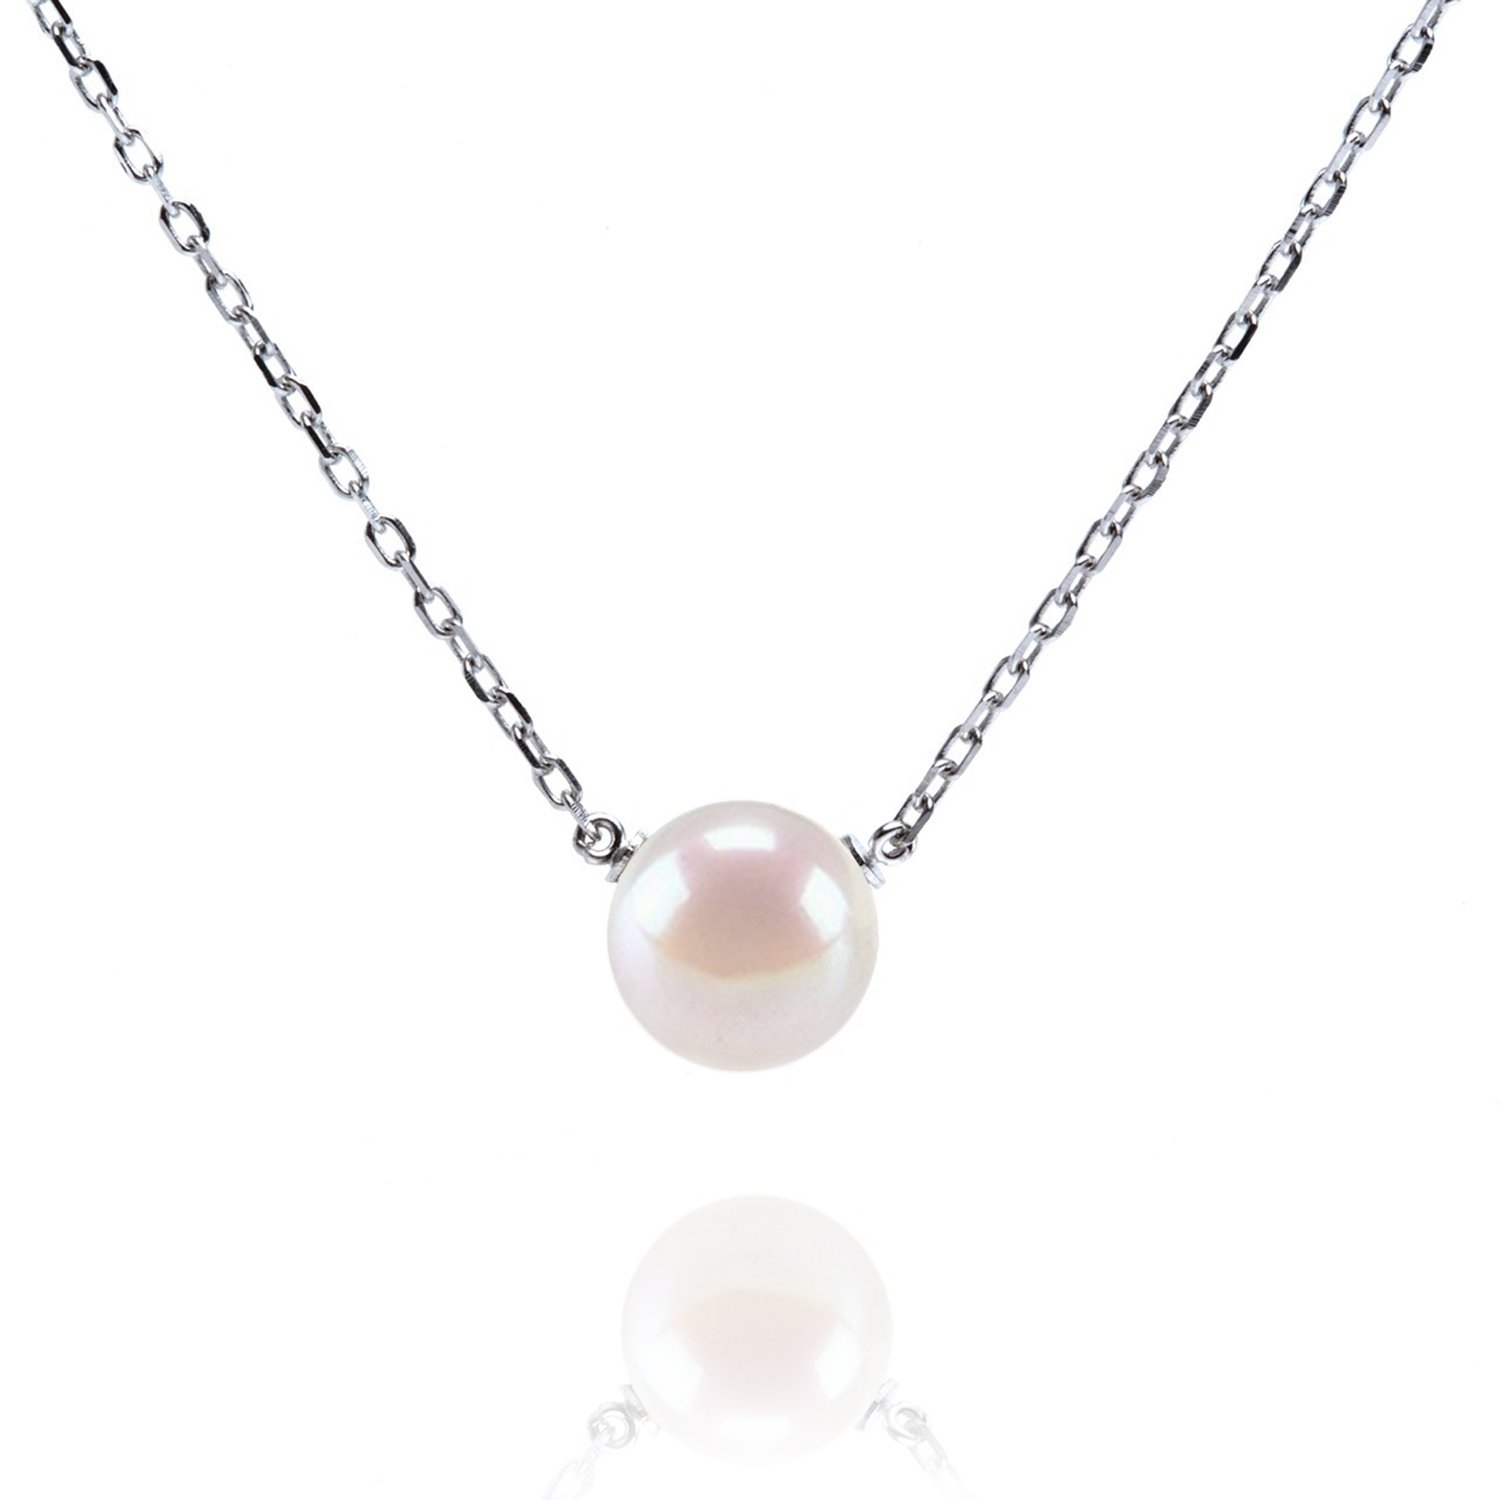 PAVOI Handpicked AAA+ Freshwater Cultured Pearl Necklace Pendant - White